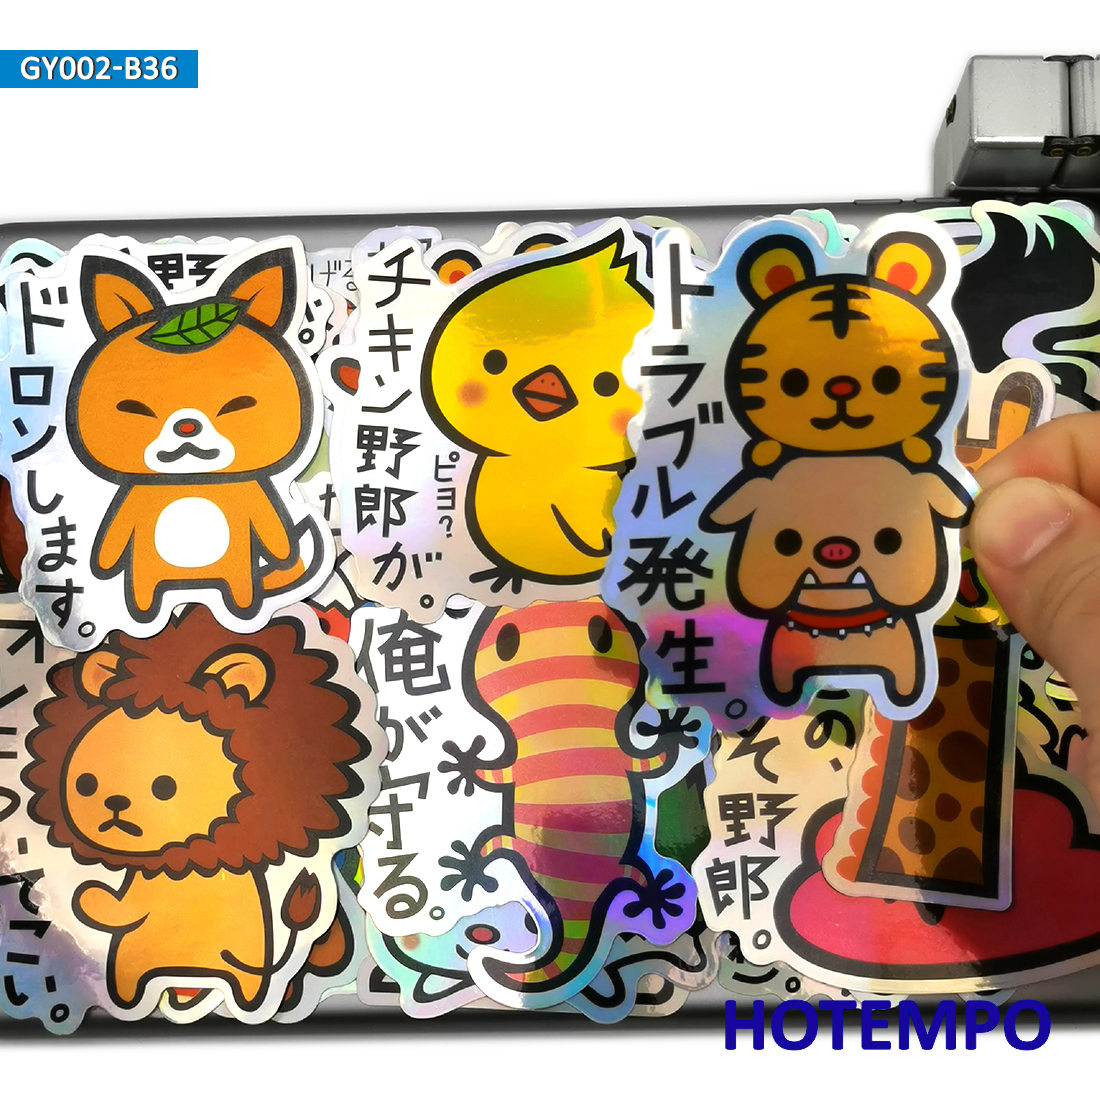 36pcs Cute Cartoon Funny Animal Laser Style Japanese Tsukkomi Stickers for Mobile Phone Laptop Suitcase Car Anime Decal Stickers